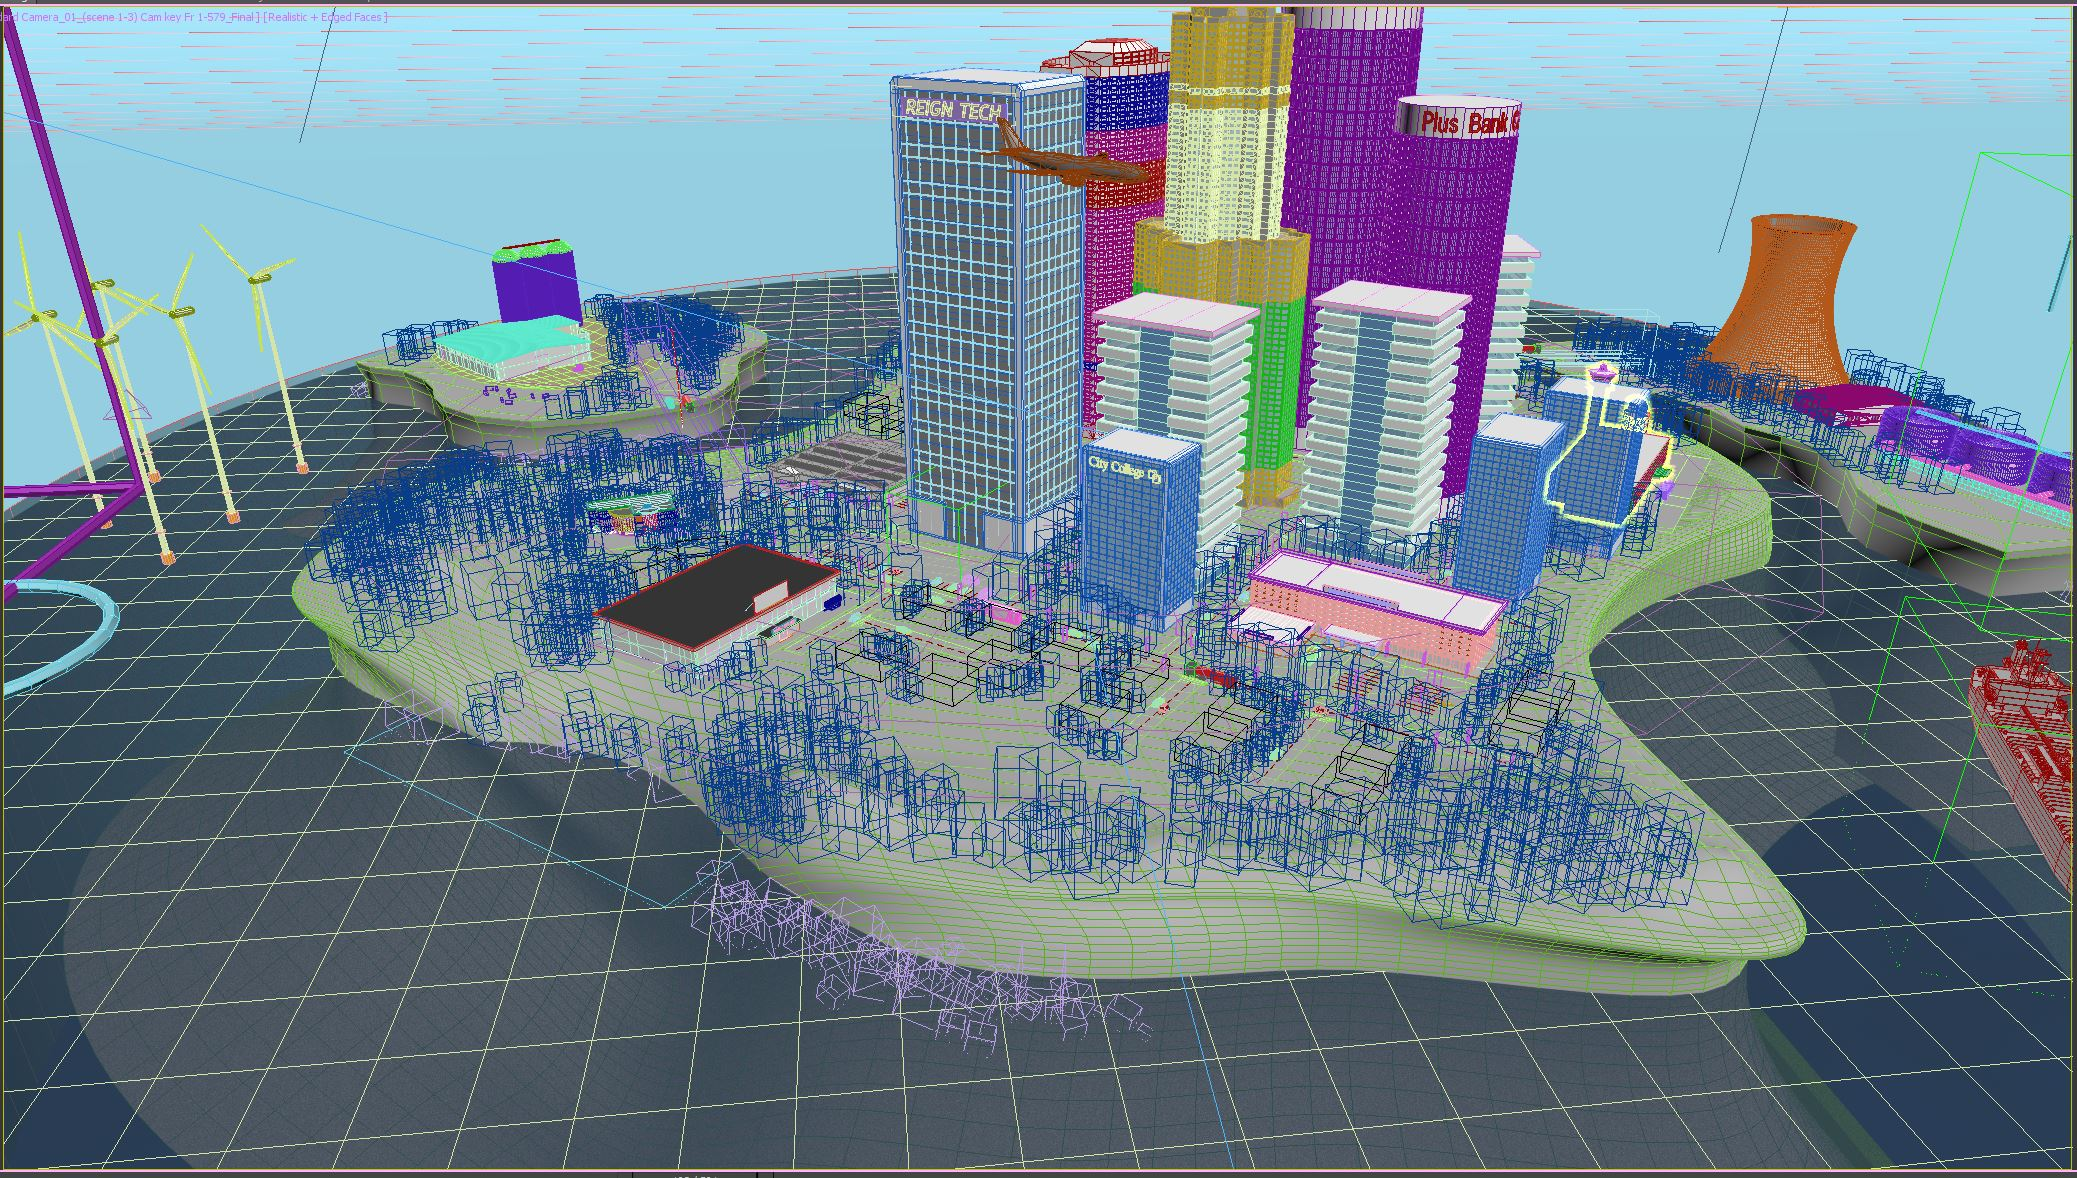 3D city mesh prior as seen from the designers perspecitve.